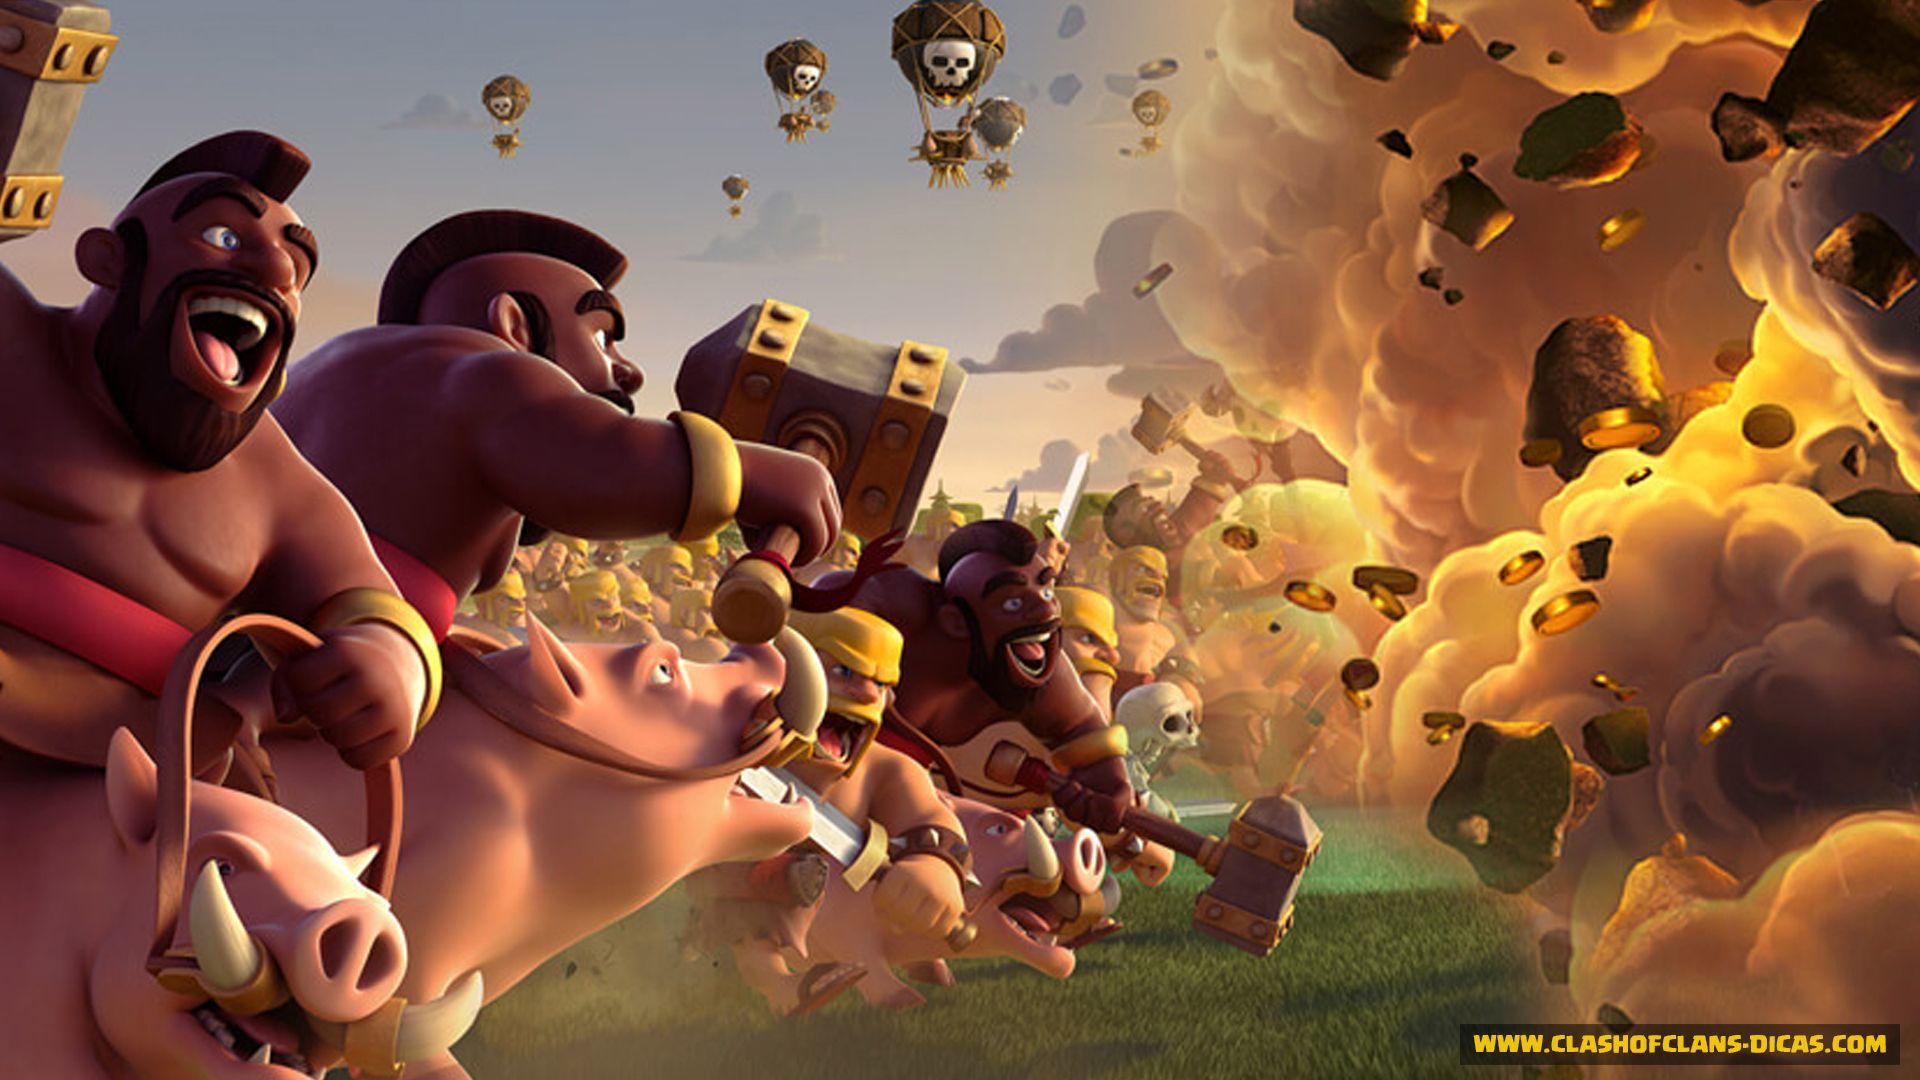 Wallpaper Of Clash Of Clans: Wallpaper Cave